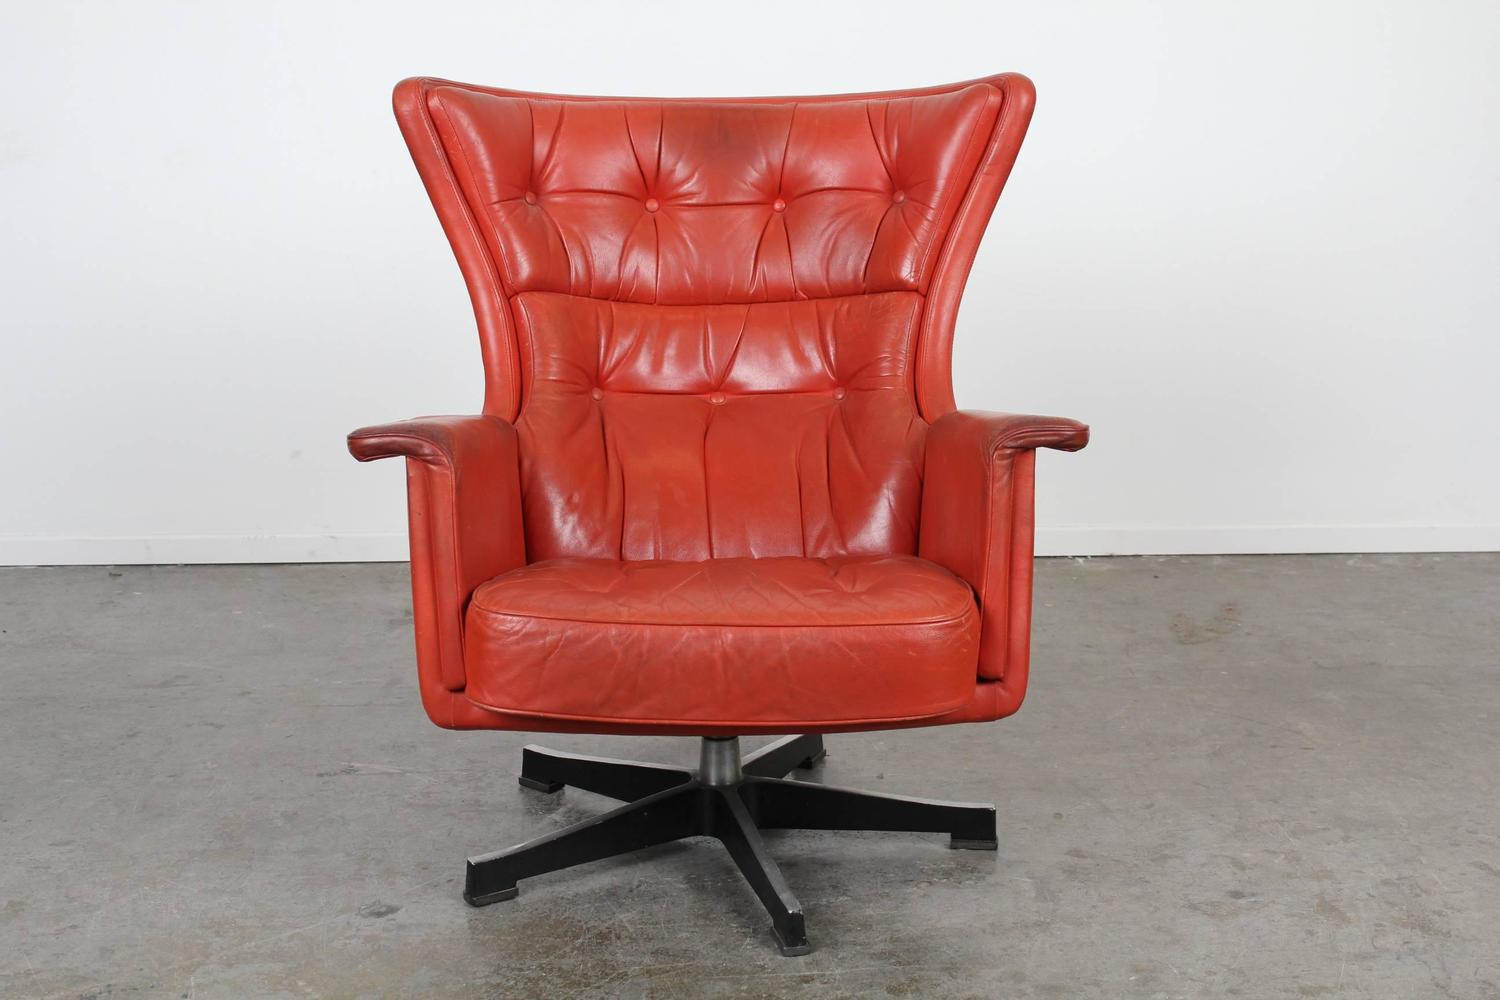 Modern Red Chair Mid Century Modern Red Leather Swivel Chair At 1stdibs